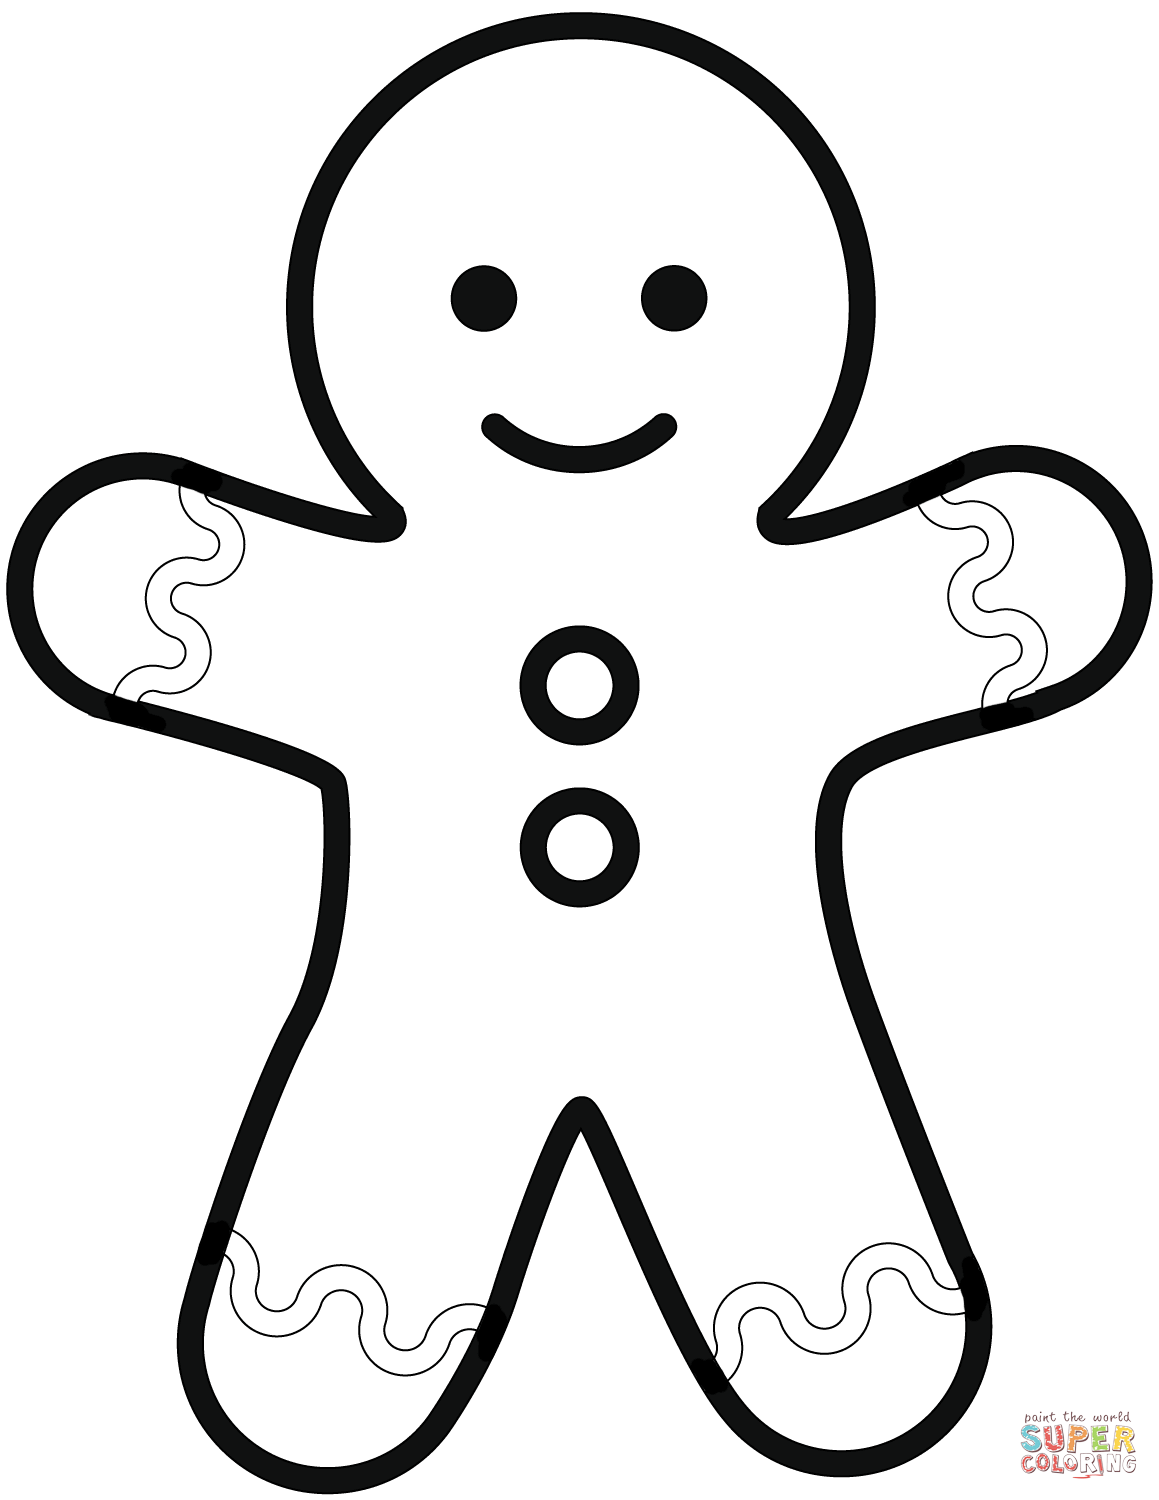 Worksheet Gingerbread Man Coloring Page